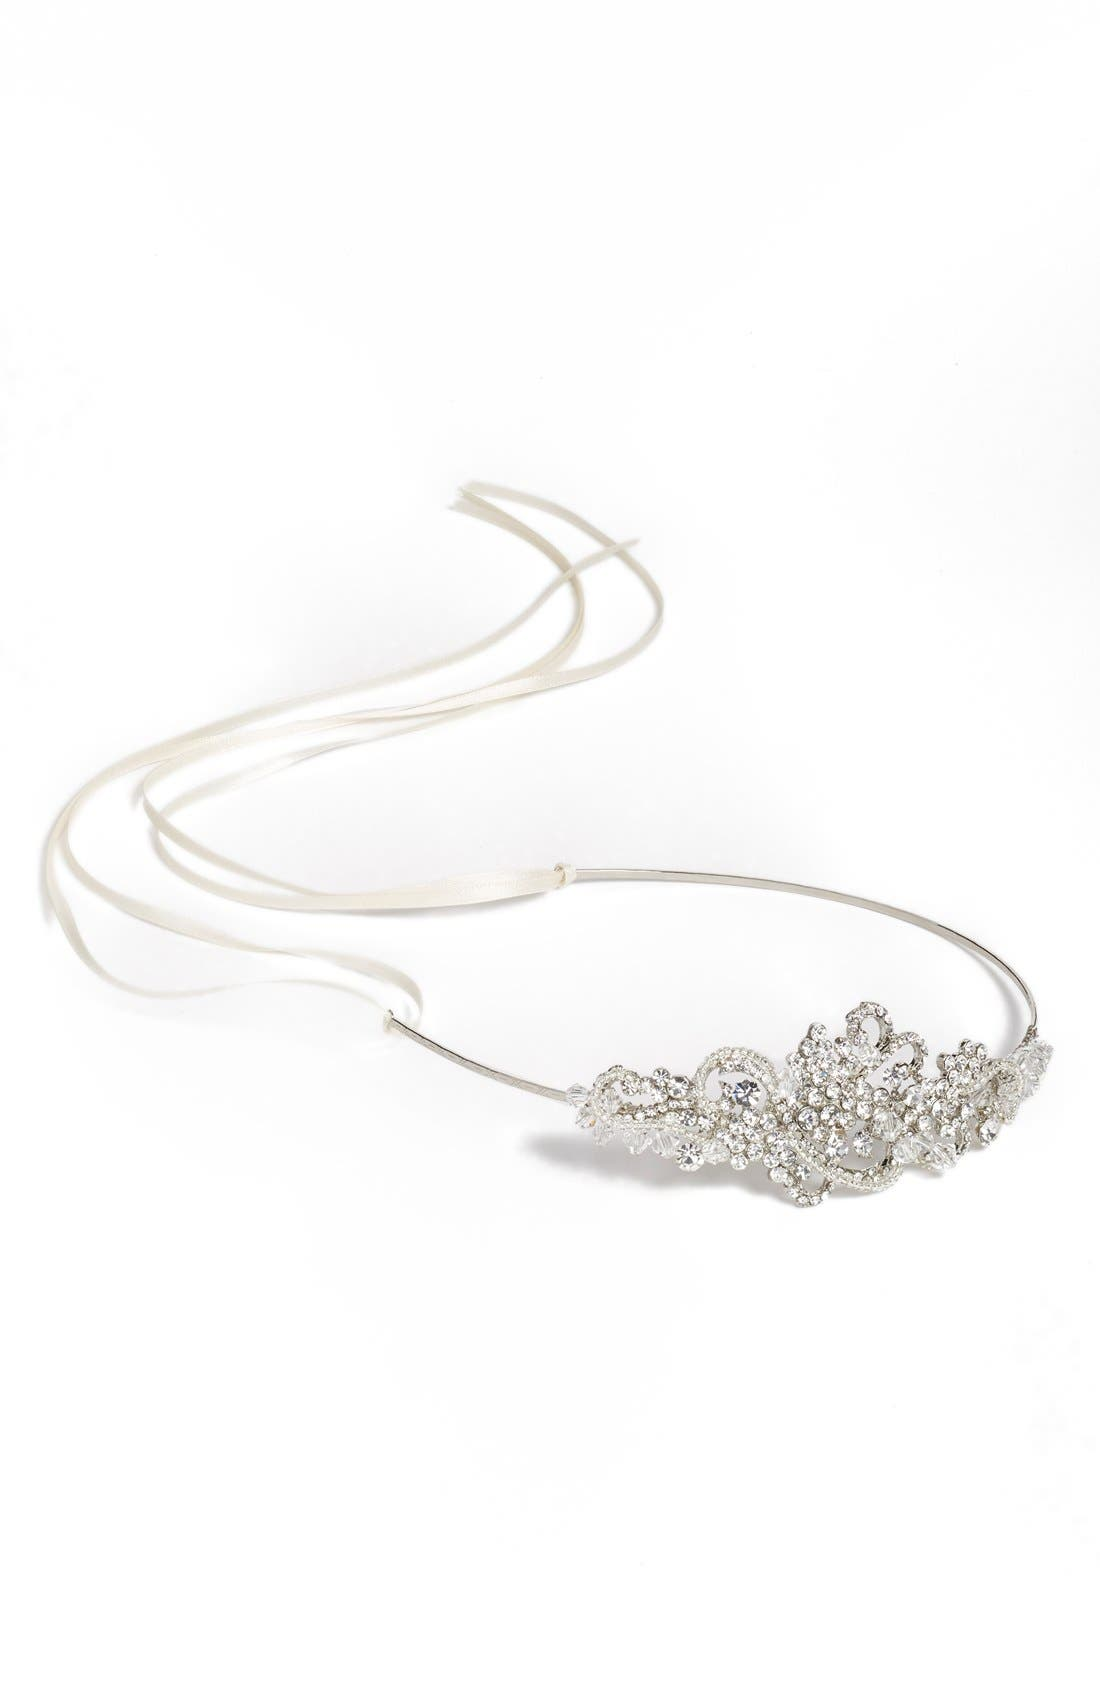 Alternate Image 1 Selected - Brides & Hairpins 'Aphrodite' Jeweled Head Band